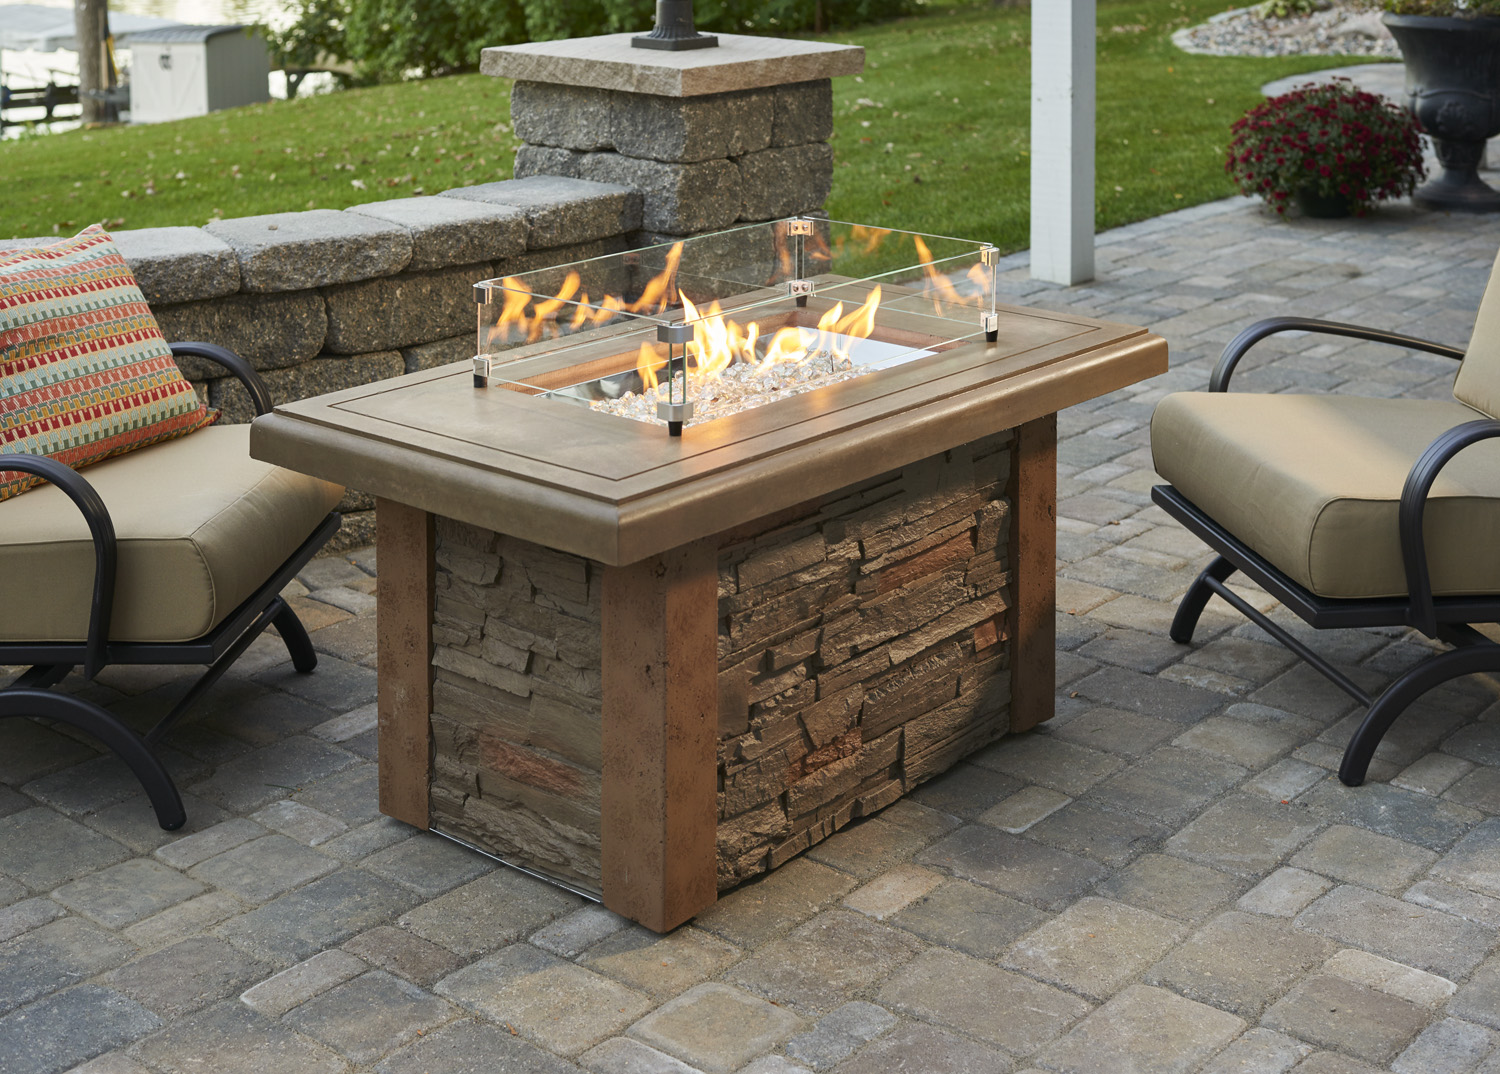 New fire table products for 2016 for Concreteworks fire table